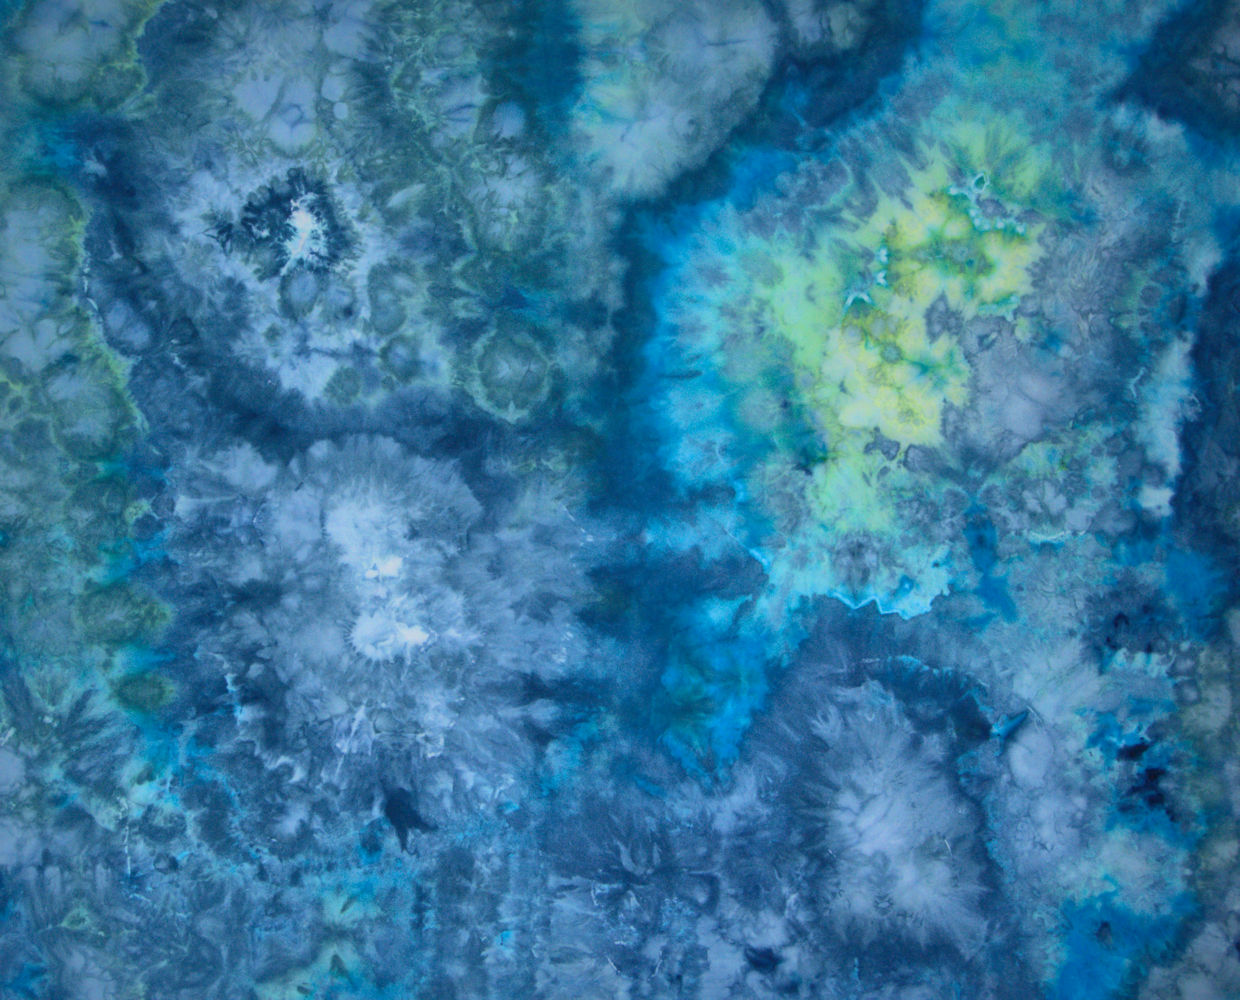 Blue, turquoise and green ice dyed fabric